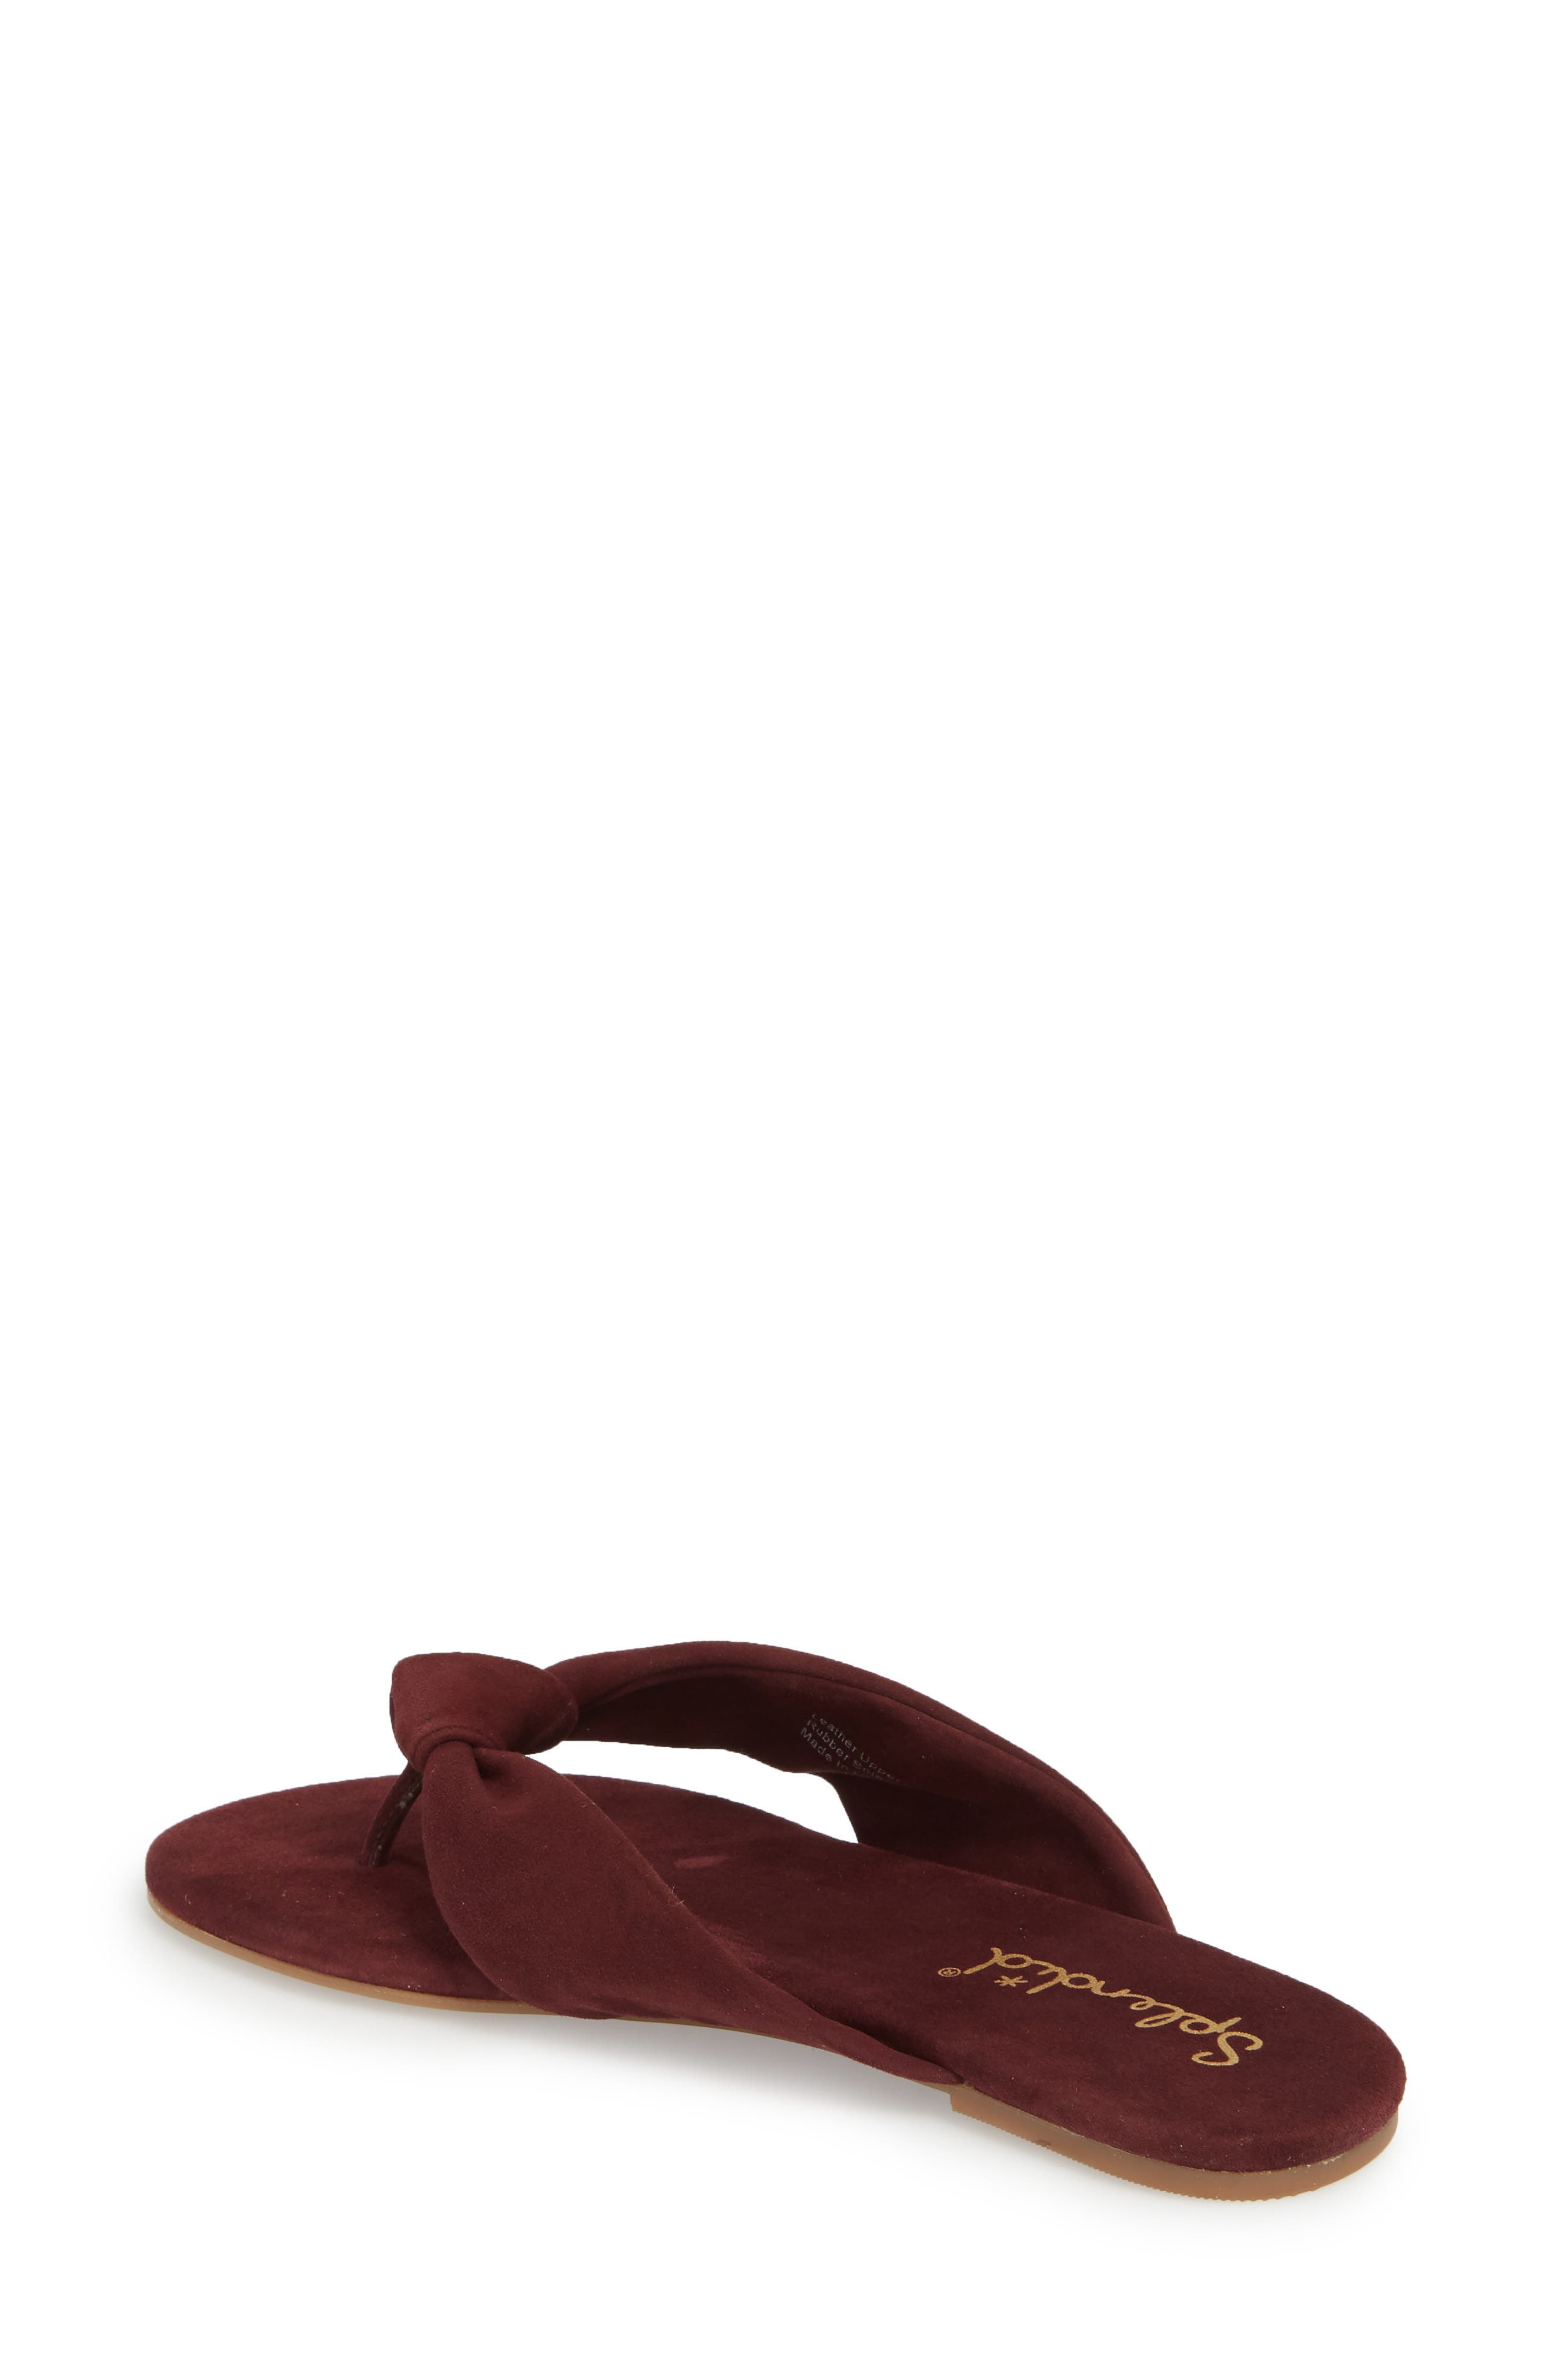 Alternate Image 2  - Splendid Bridgette Knotted Flip Flop (Women)